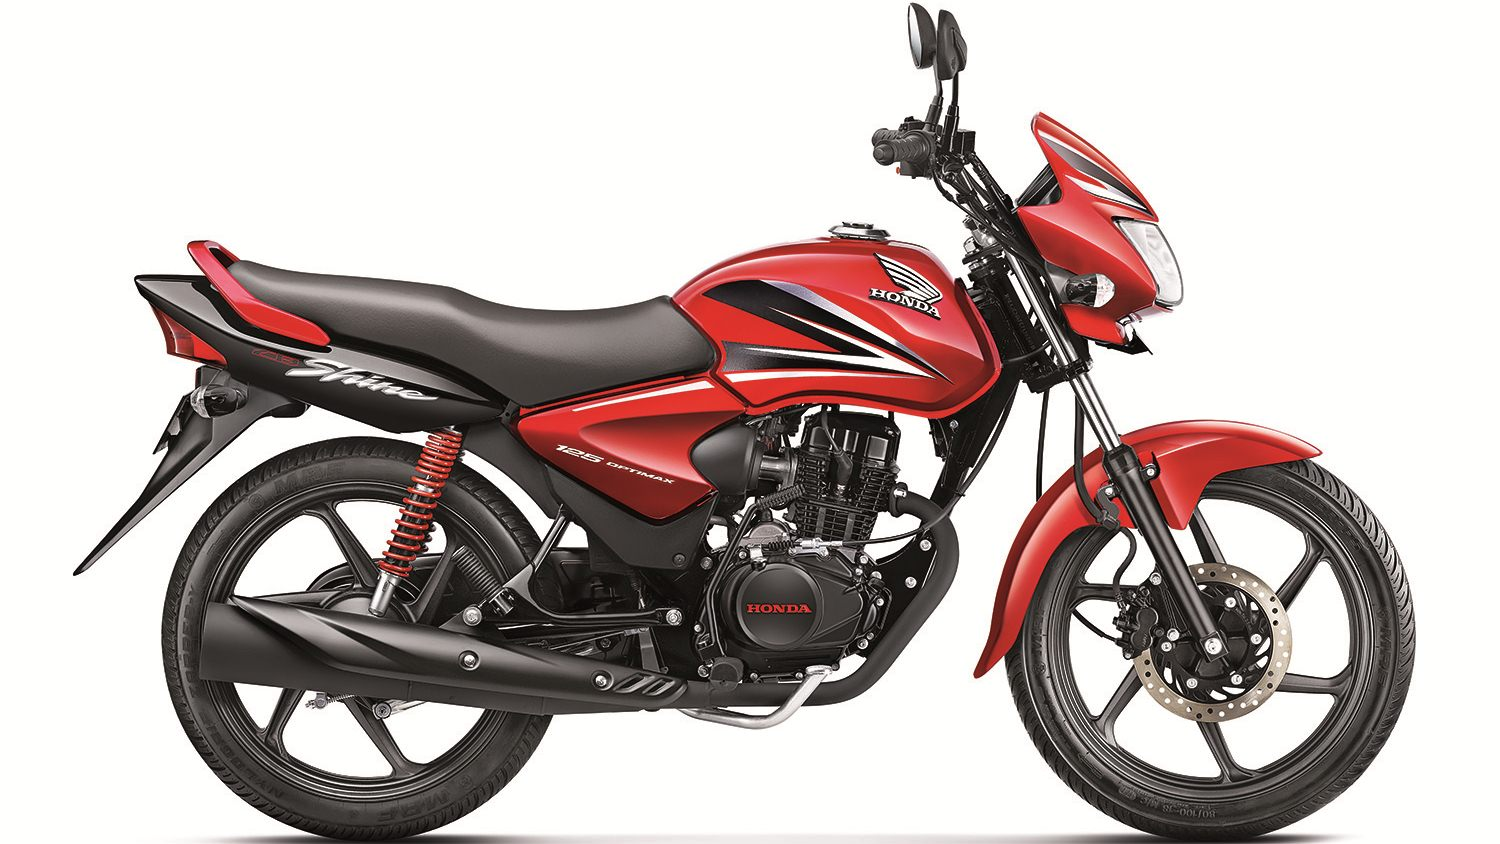 New Honda CB SHINE colour - dual tone red and black